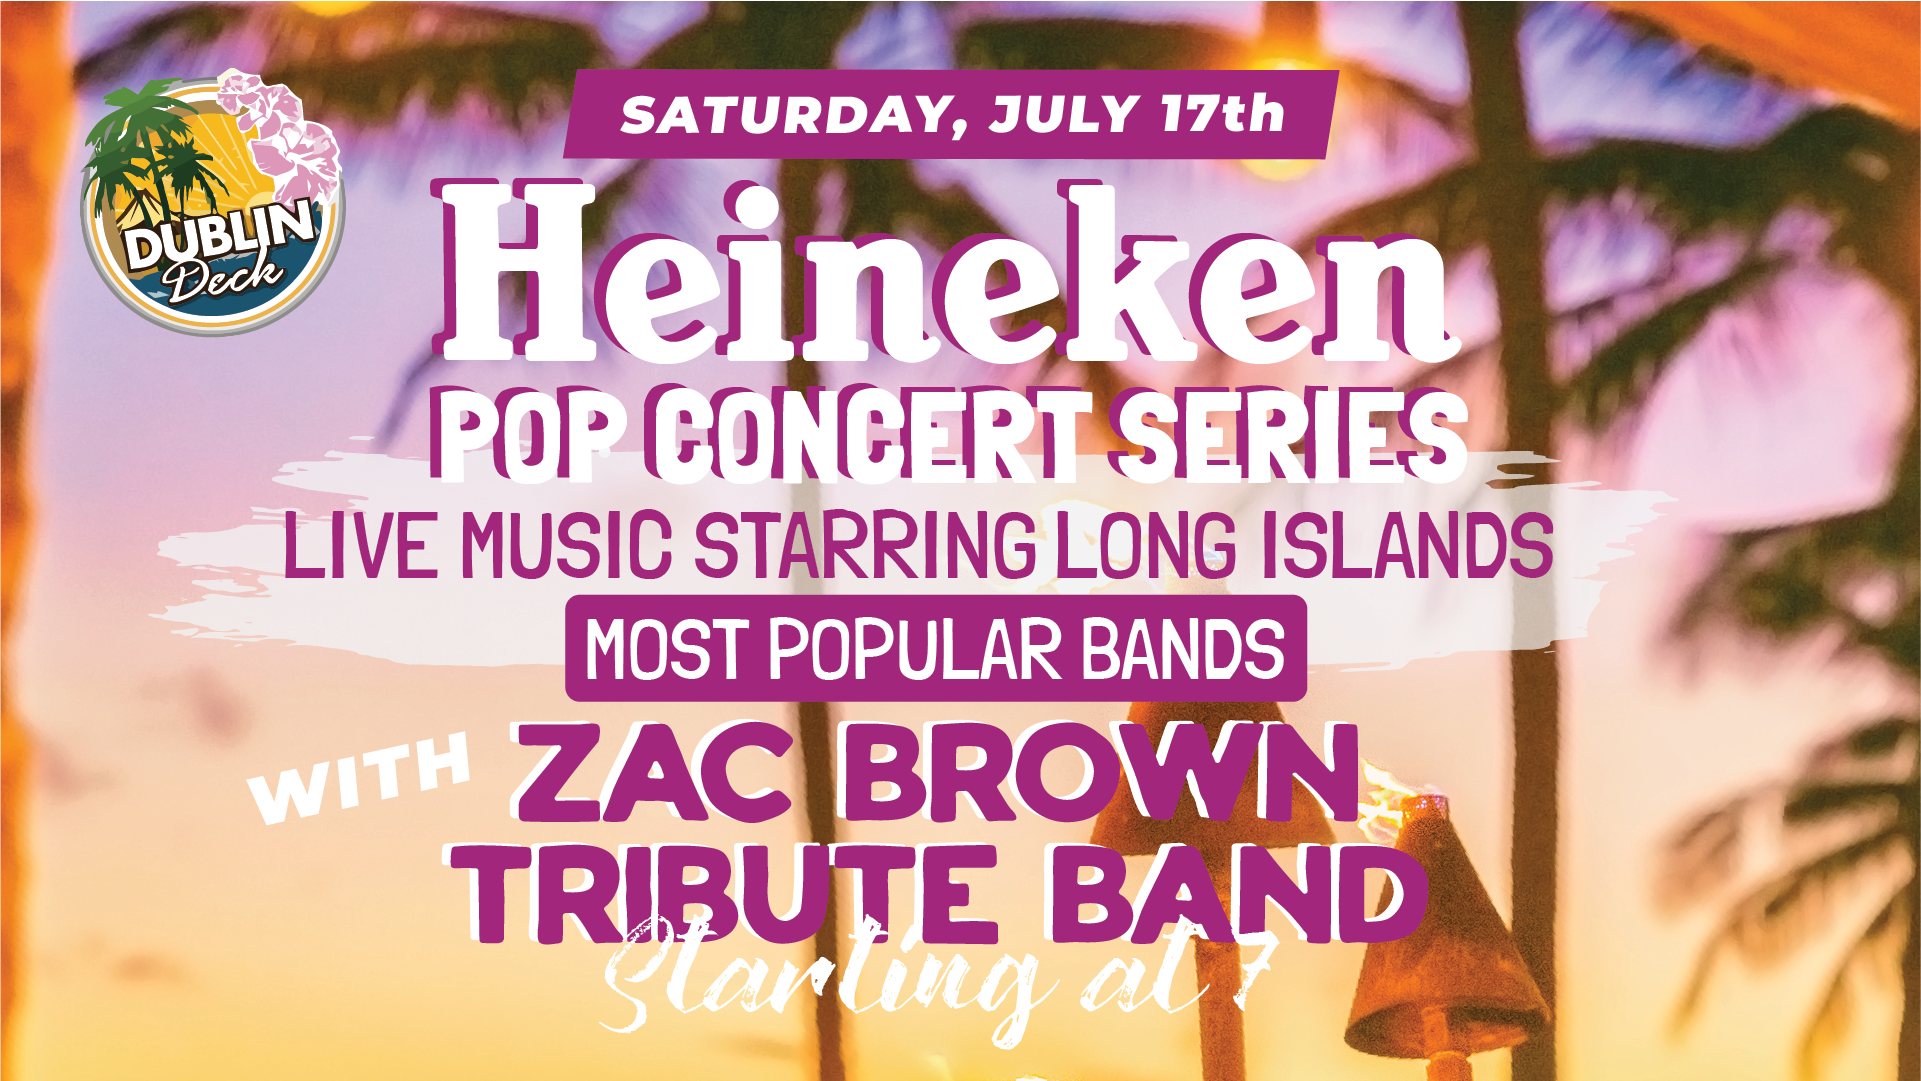 Saturday July 17th with Zac Brown Tribute Band 7:00 PM